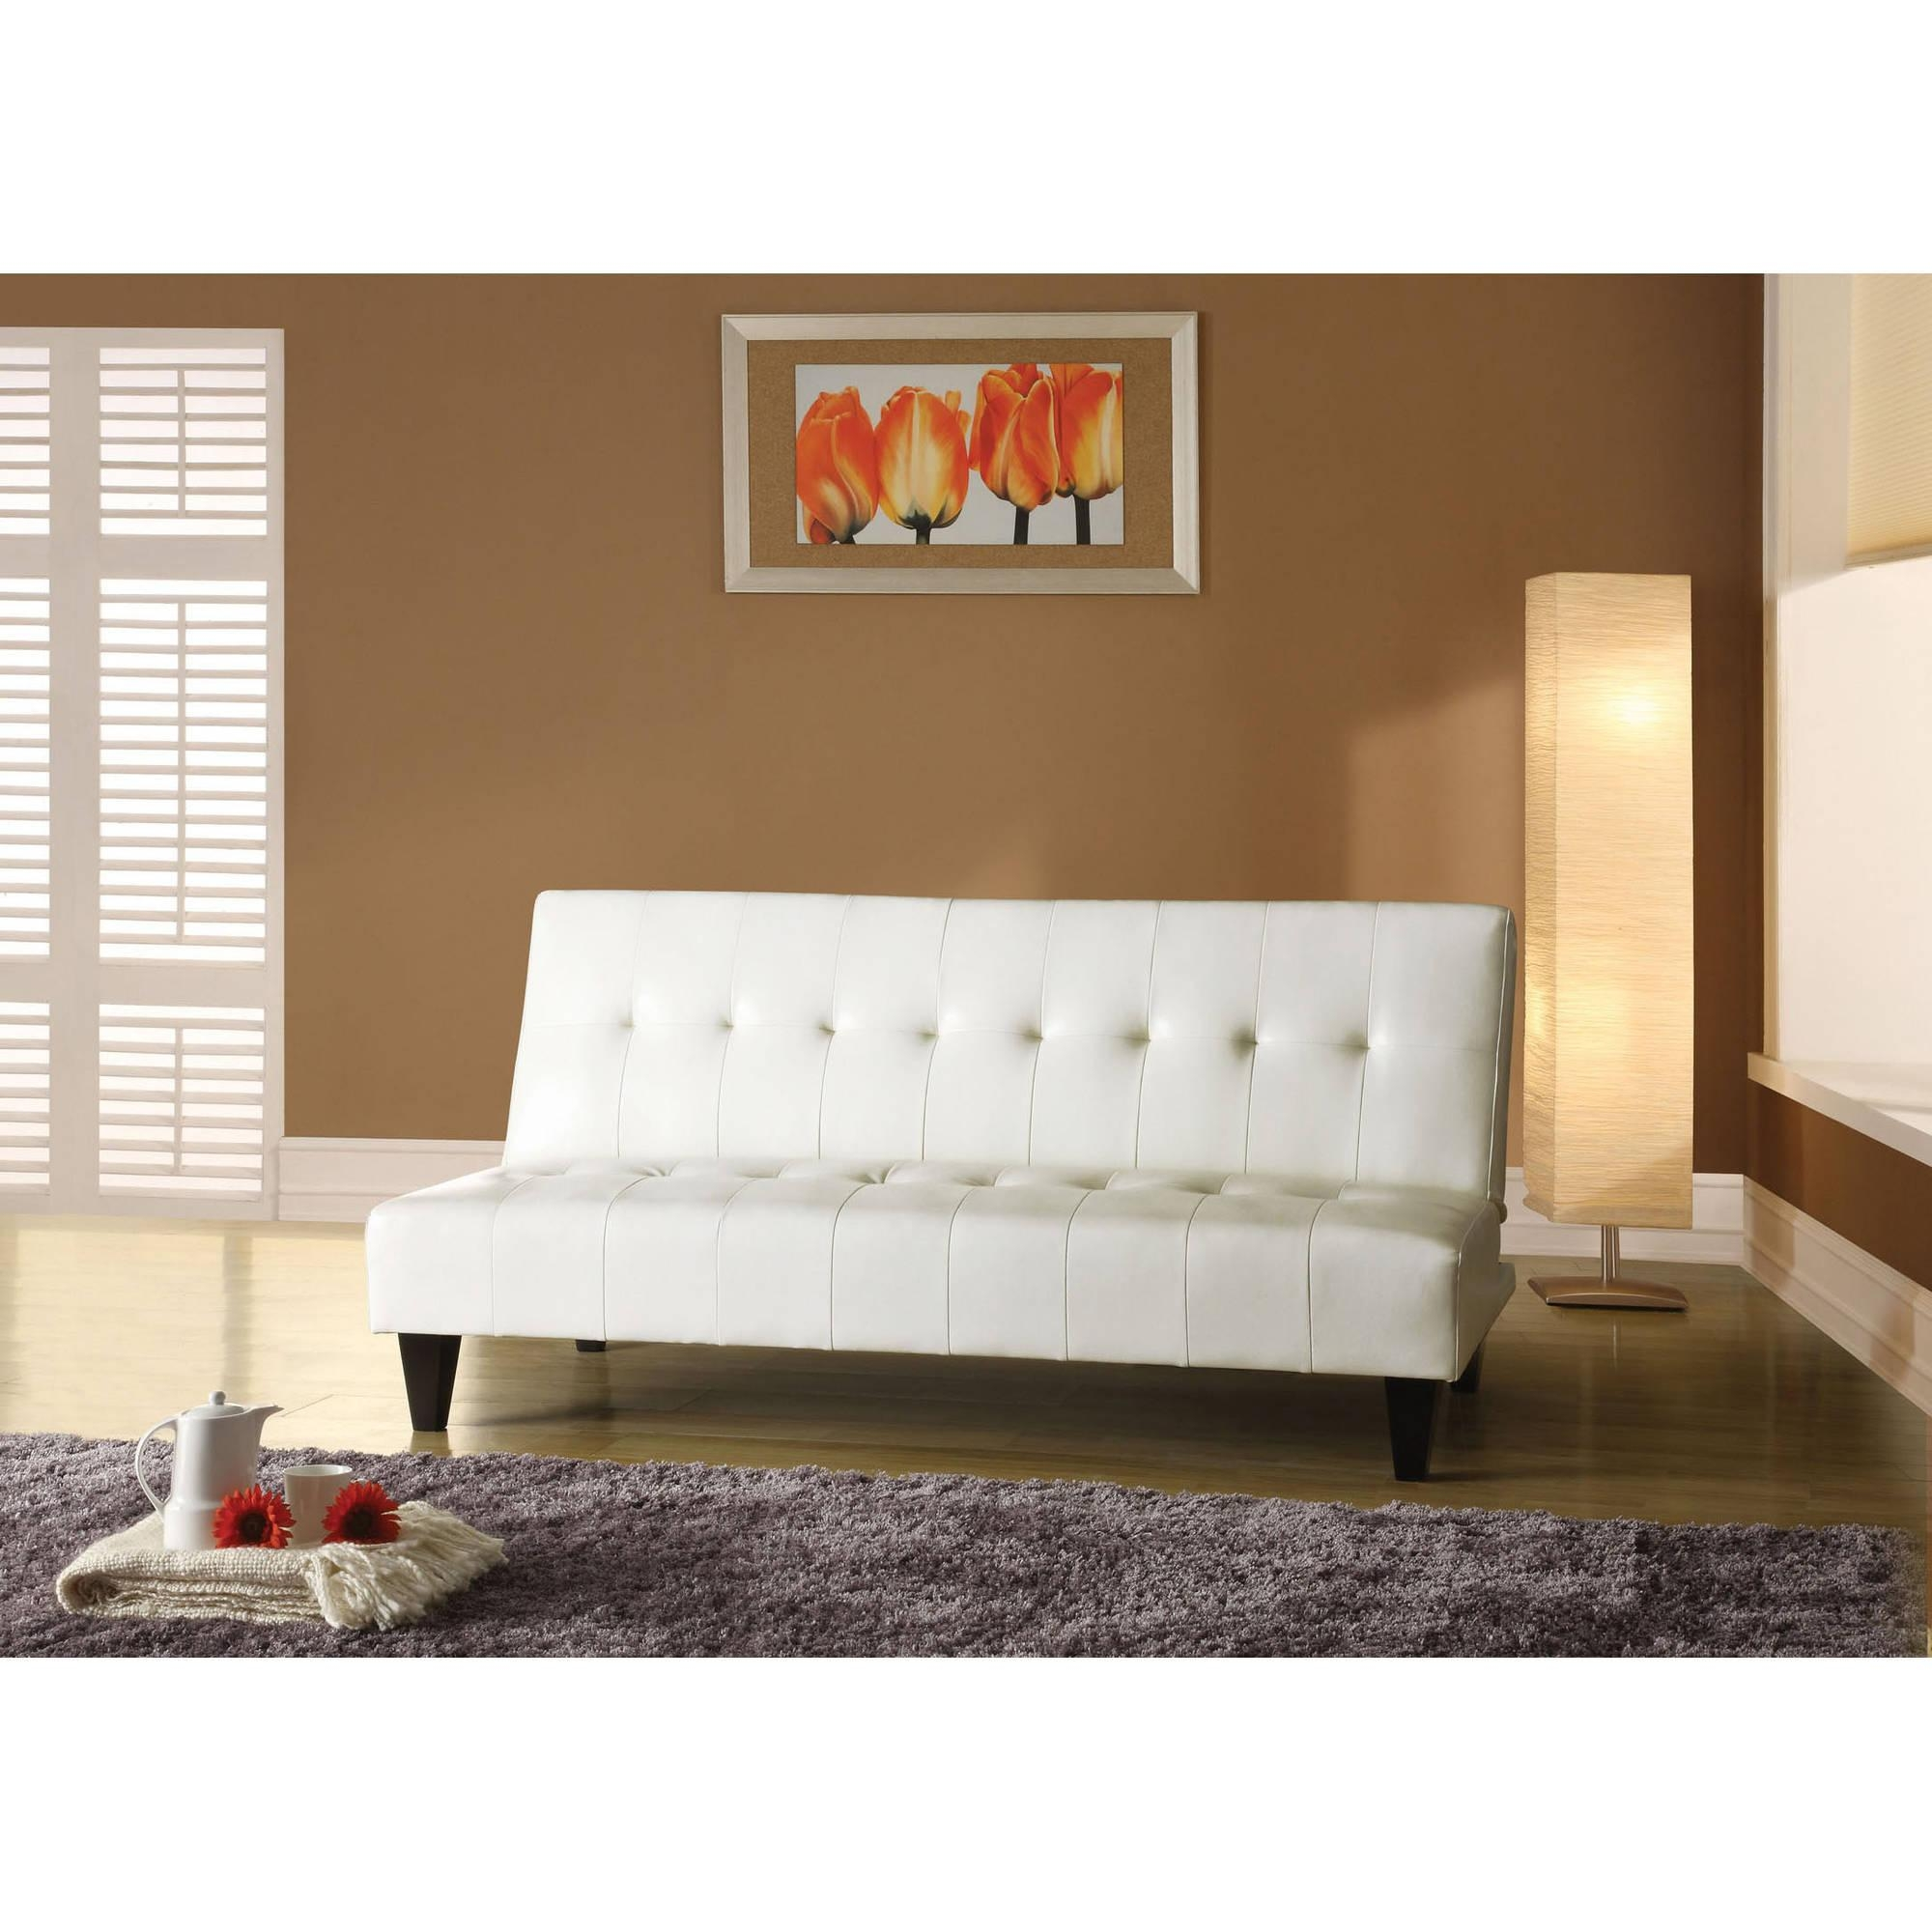 Faux Leather Bycast Adjustable Futon Sofa, Multiple Colors With Regard To Faux Leather Futon Sofas (Image 4 of 20)